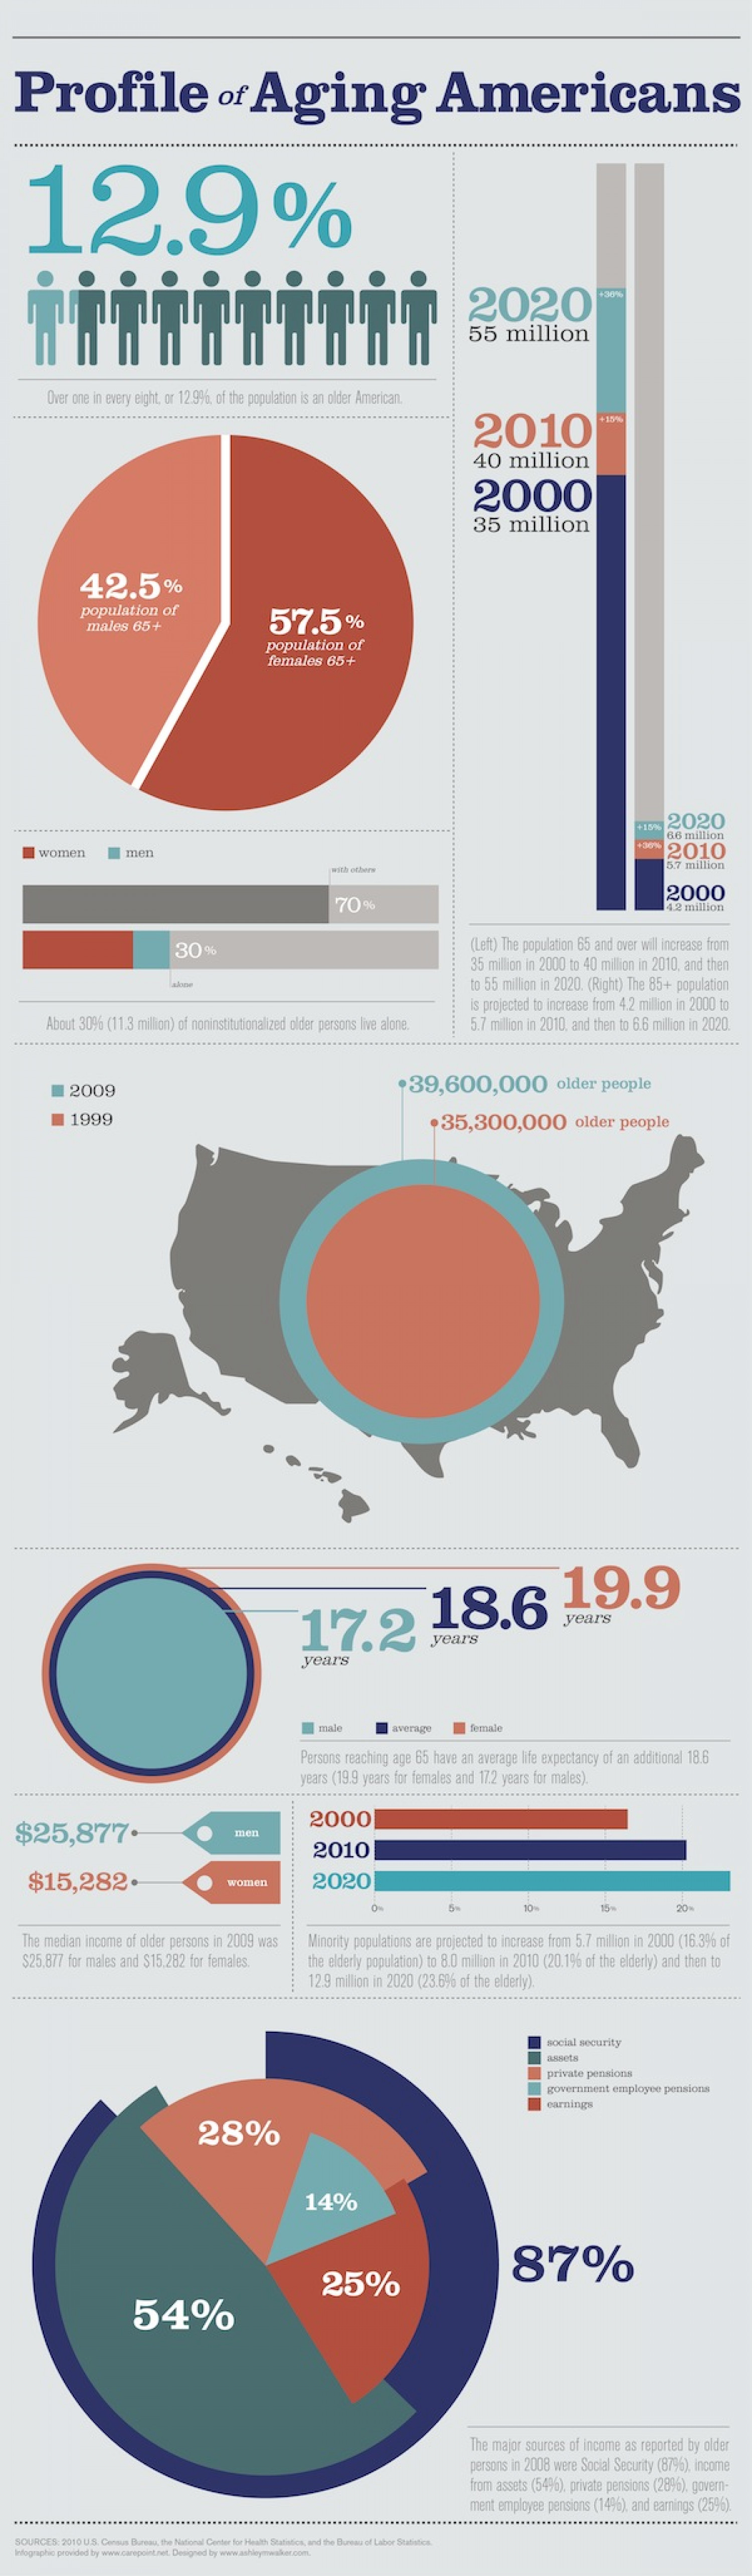 Profile of Aging Americans Infographic